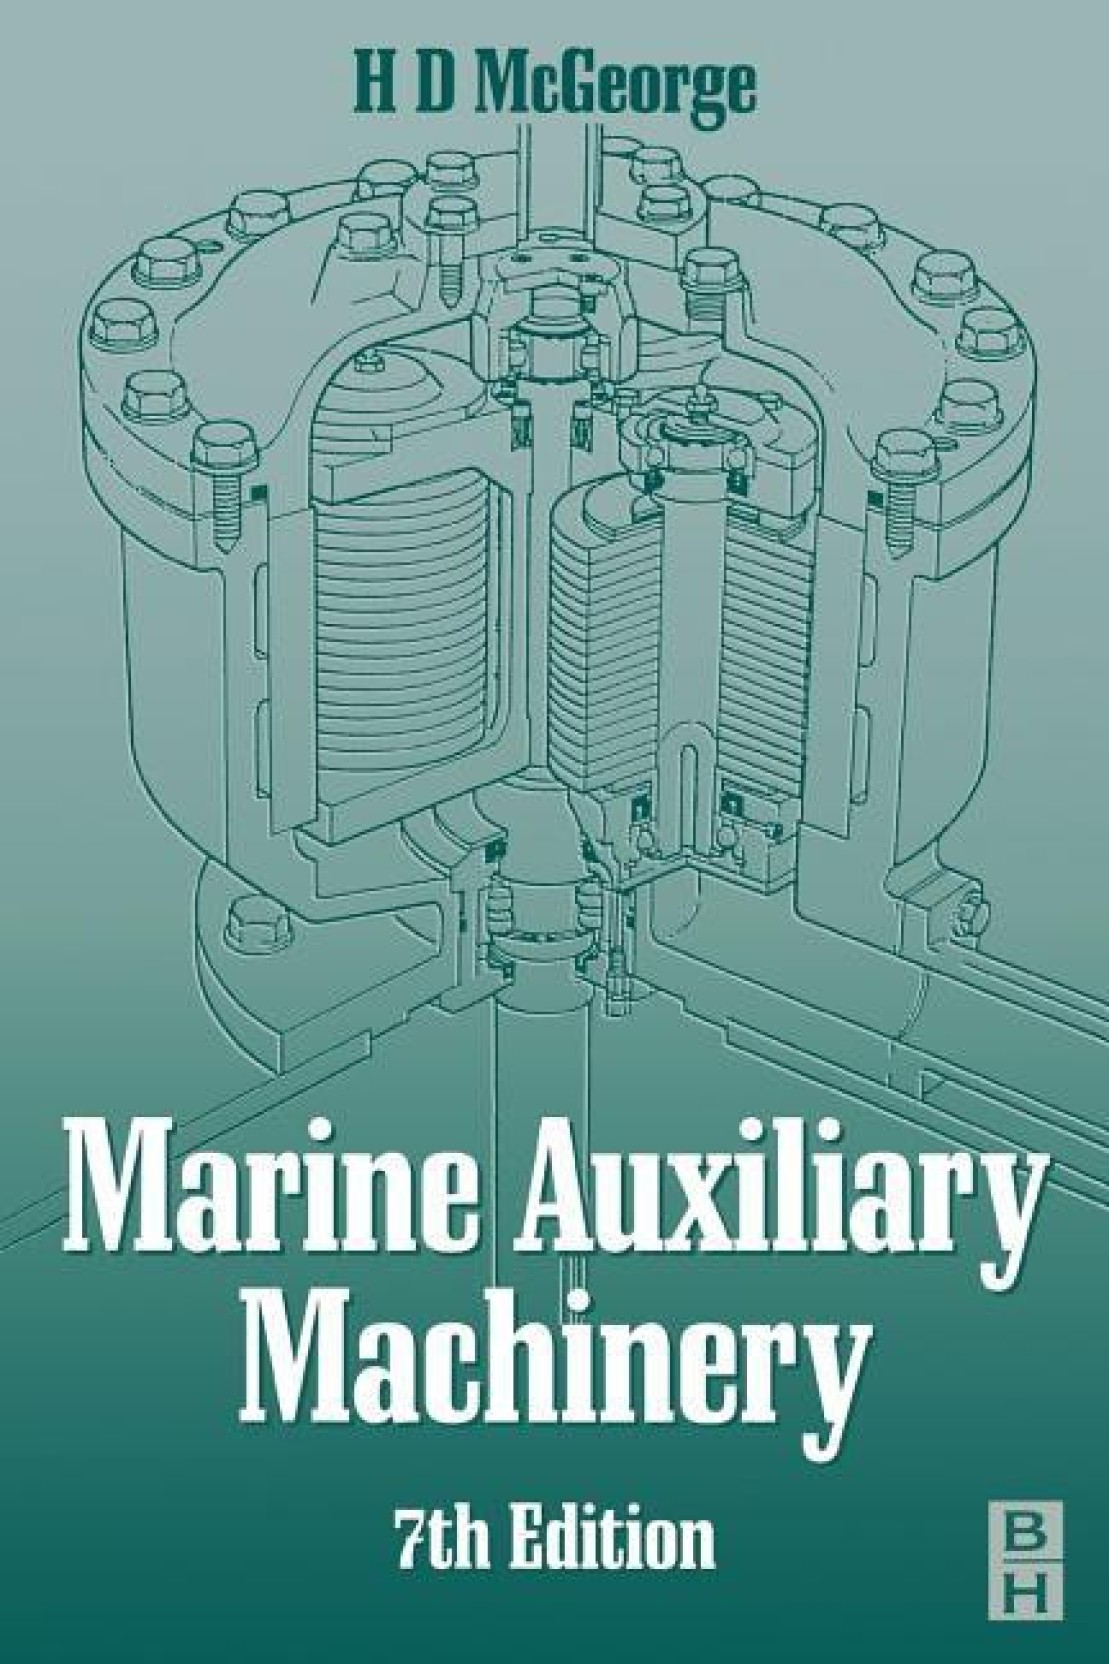 Marine Auxiliary Machinery. ADD TO CART